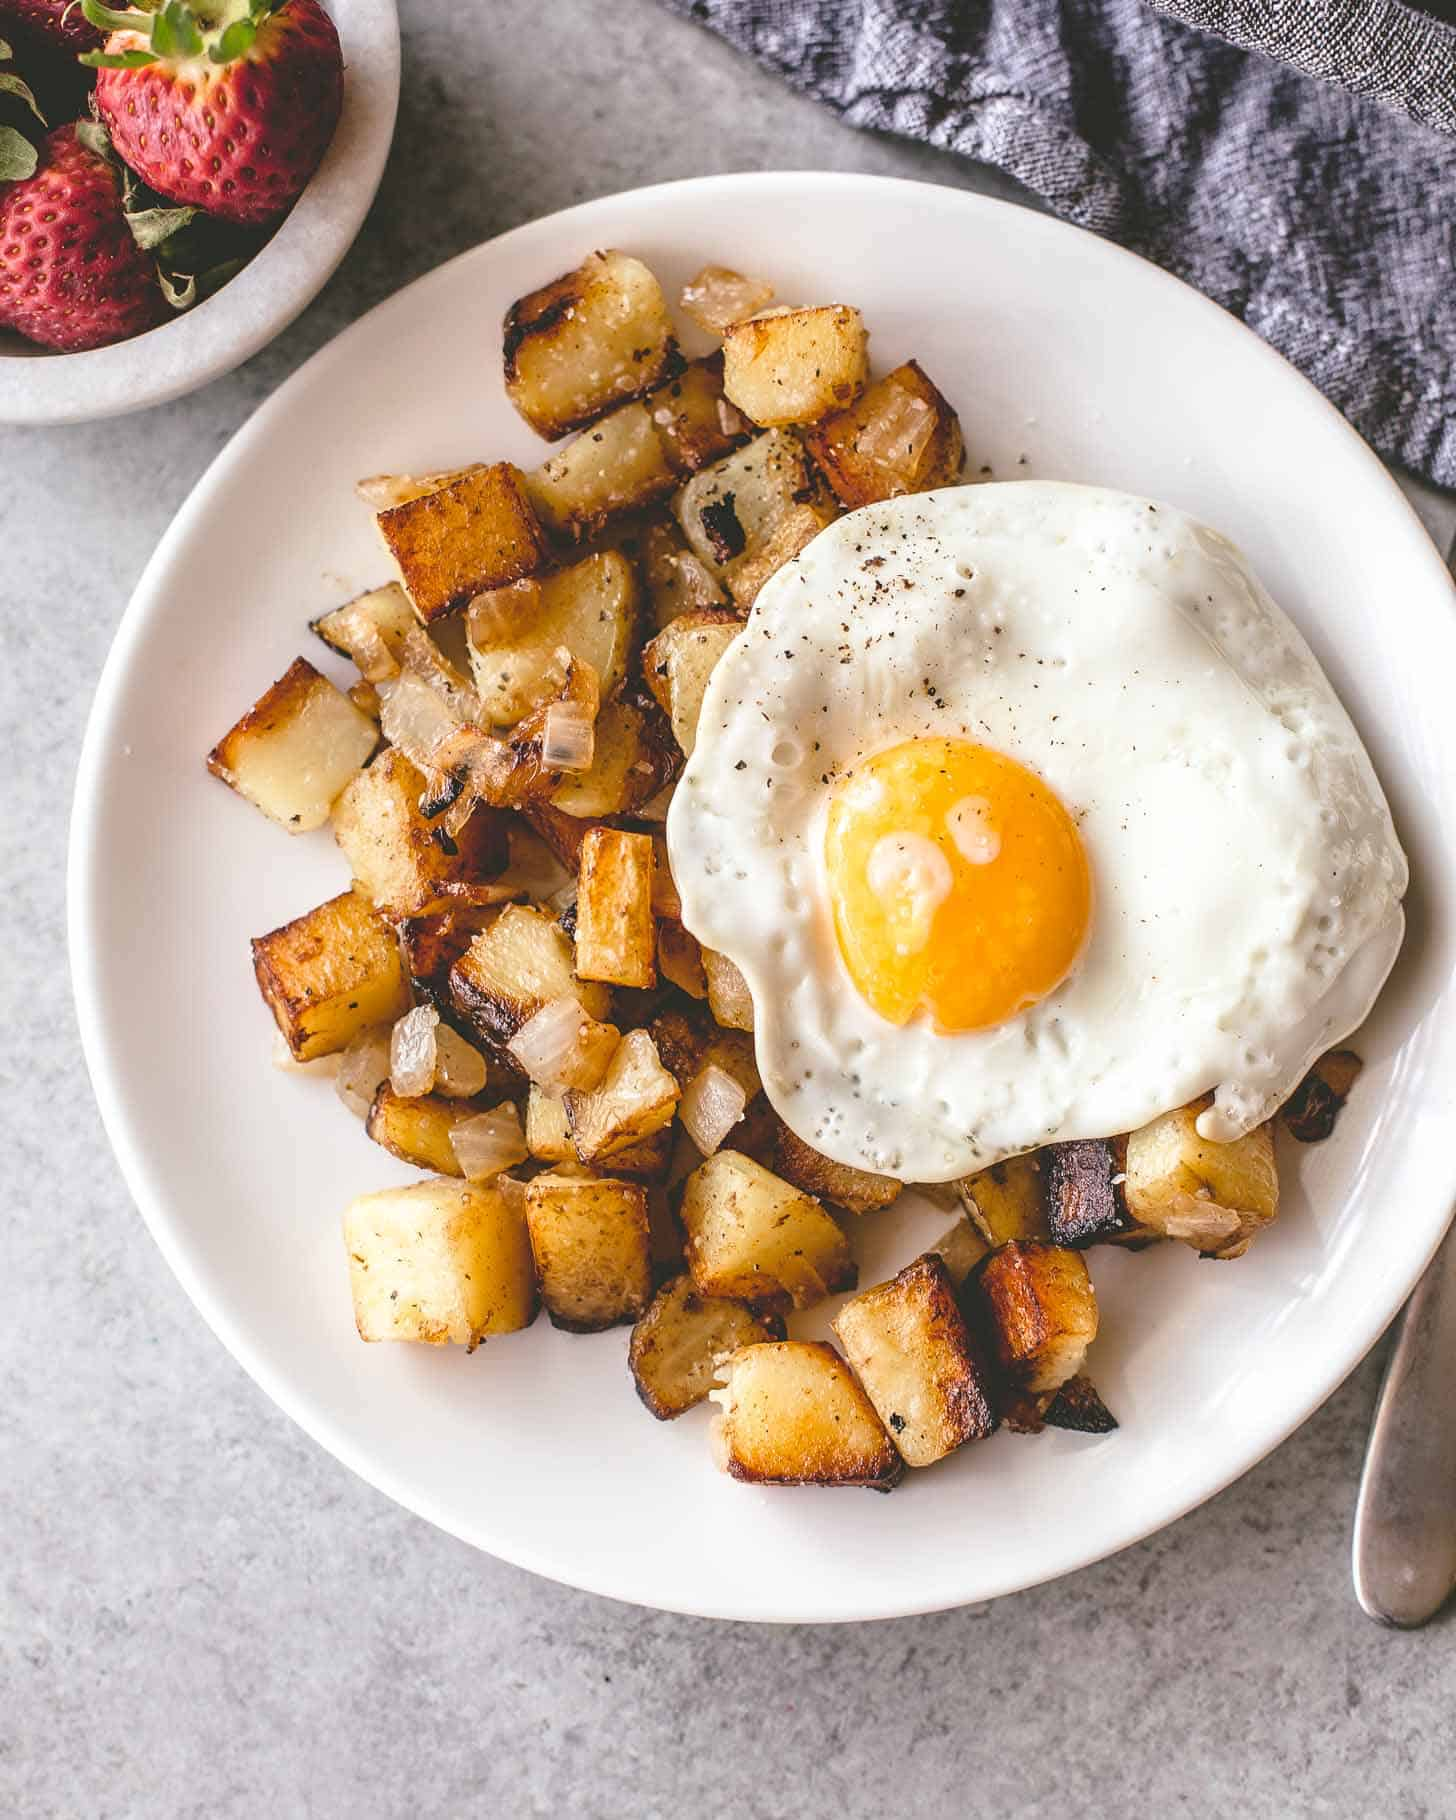 home fries on a white plate topped with a fried egg